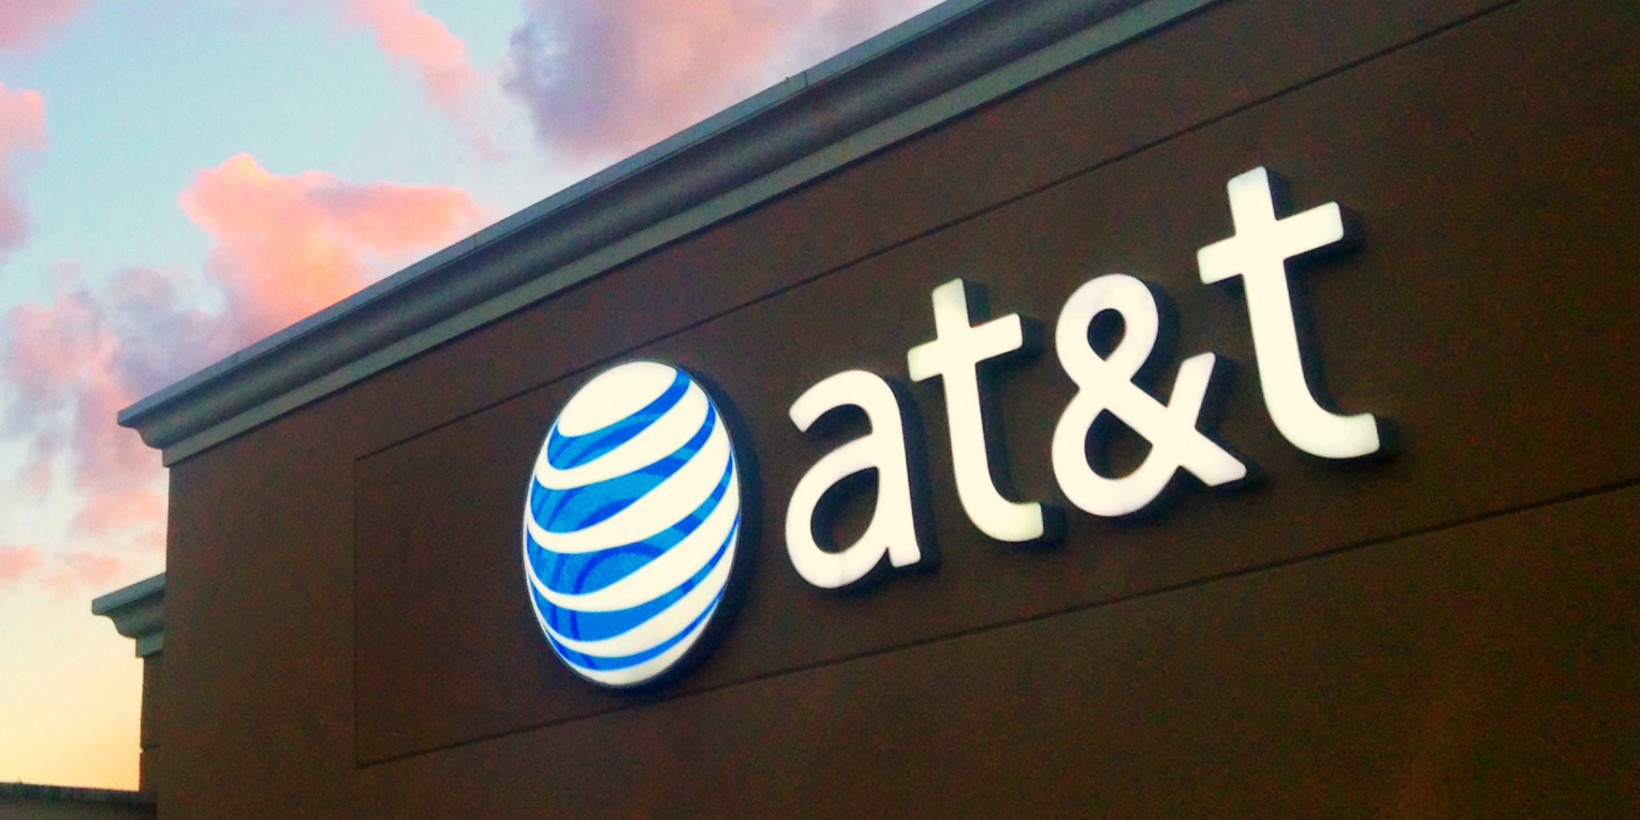 AT&T is making millions by selling your phone records to the police